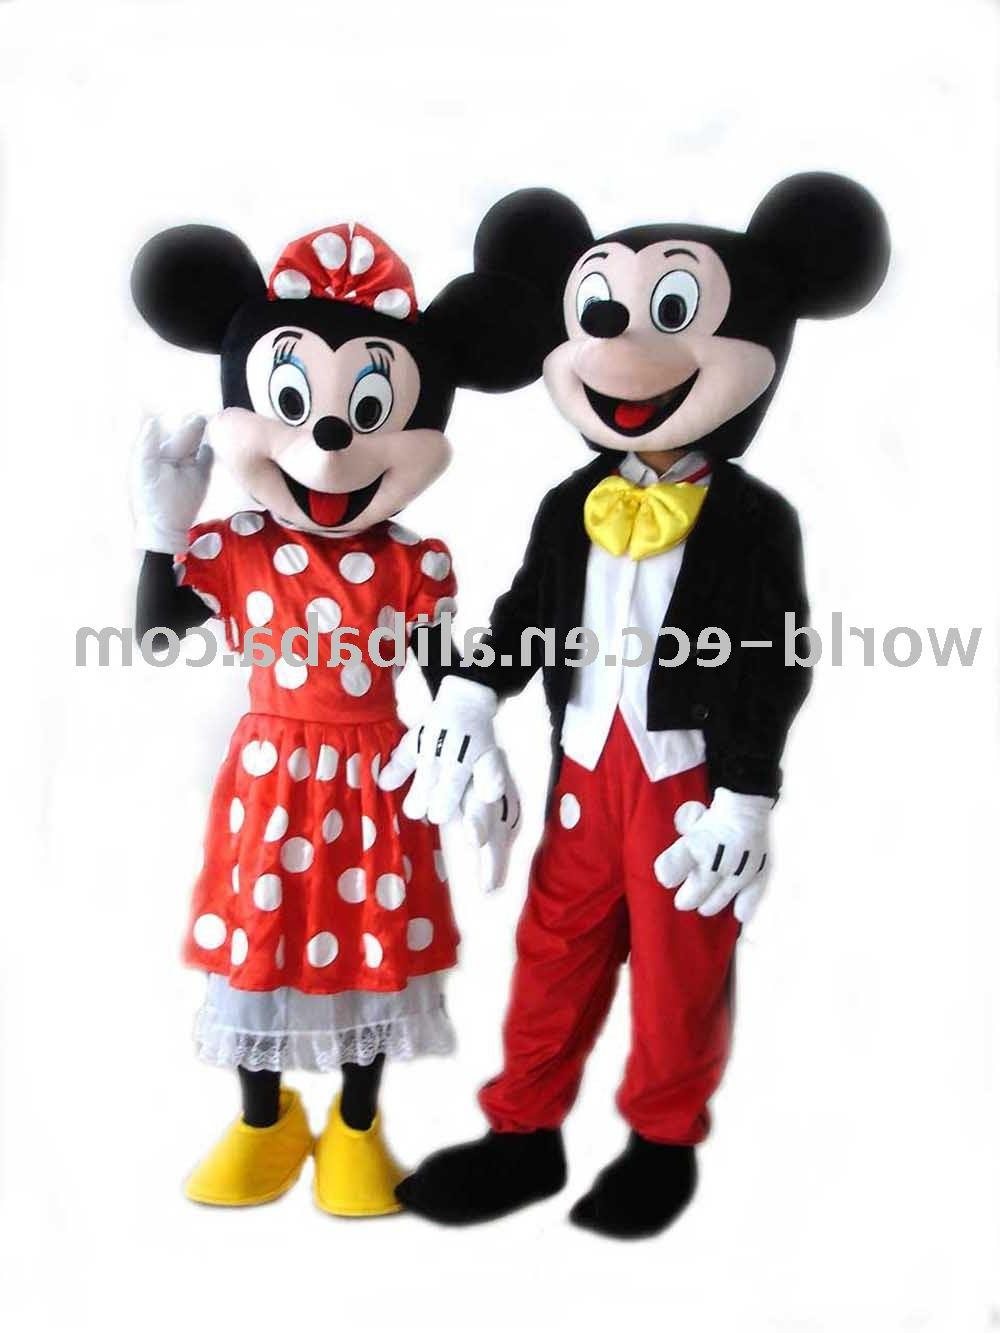 Mickey & Minnie Cartoon